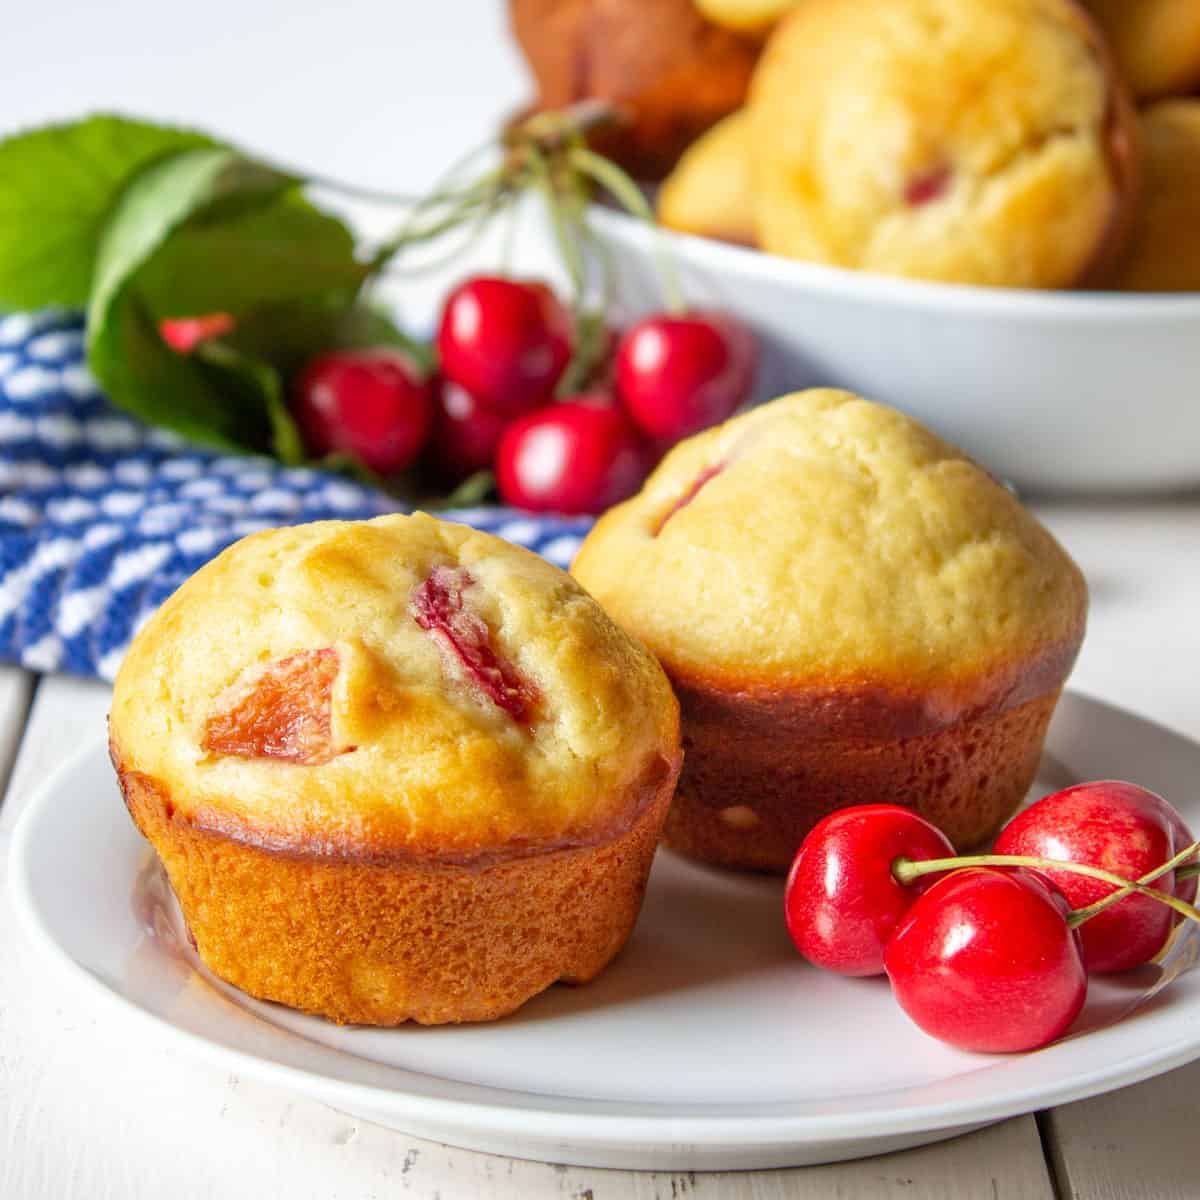 Two cherry muffins on a small white plate.